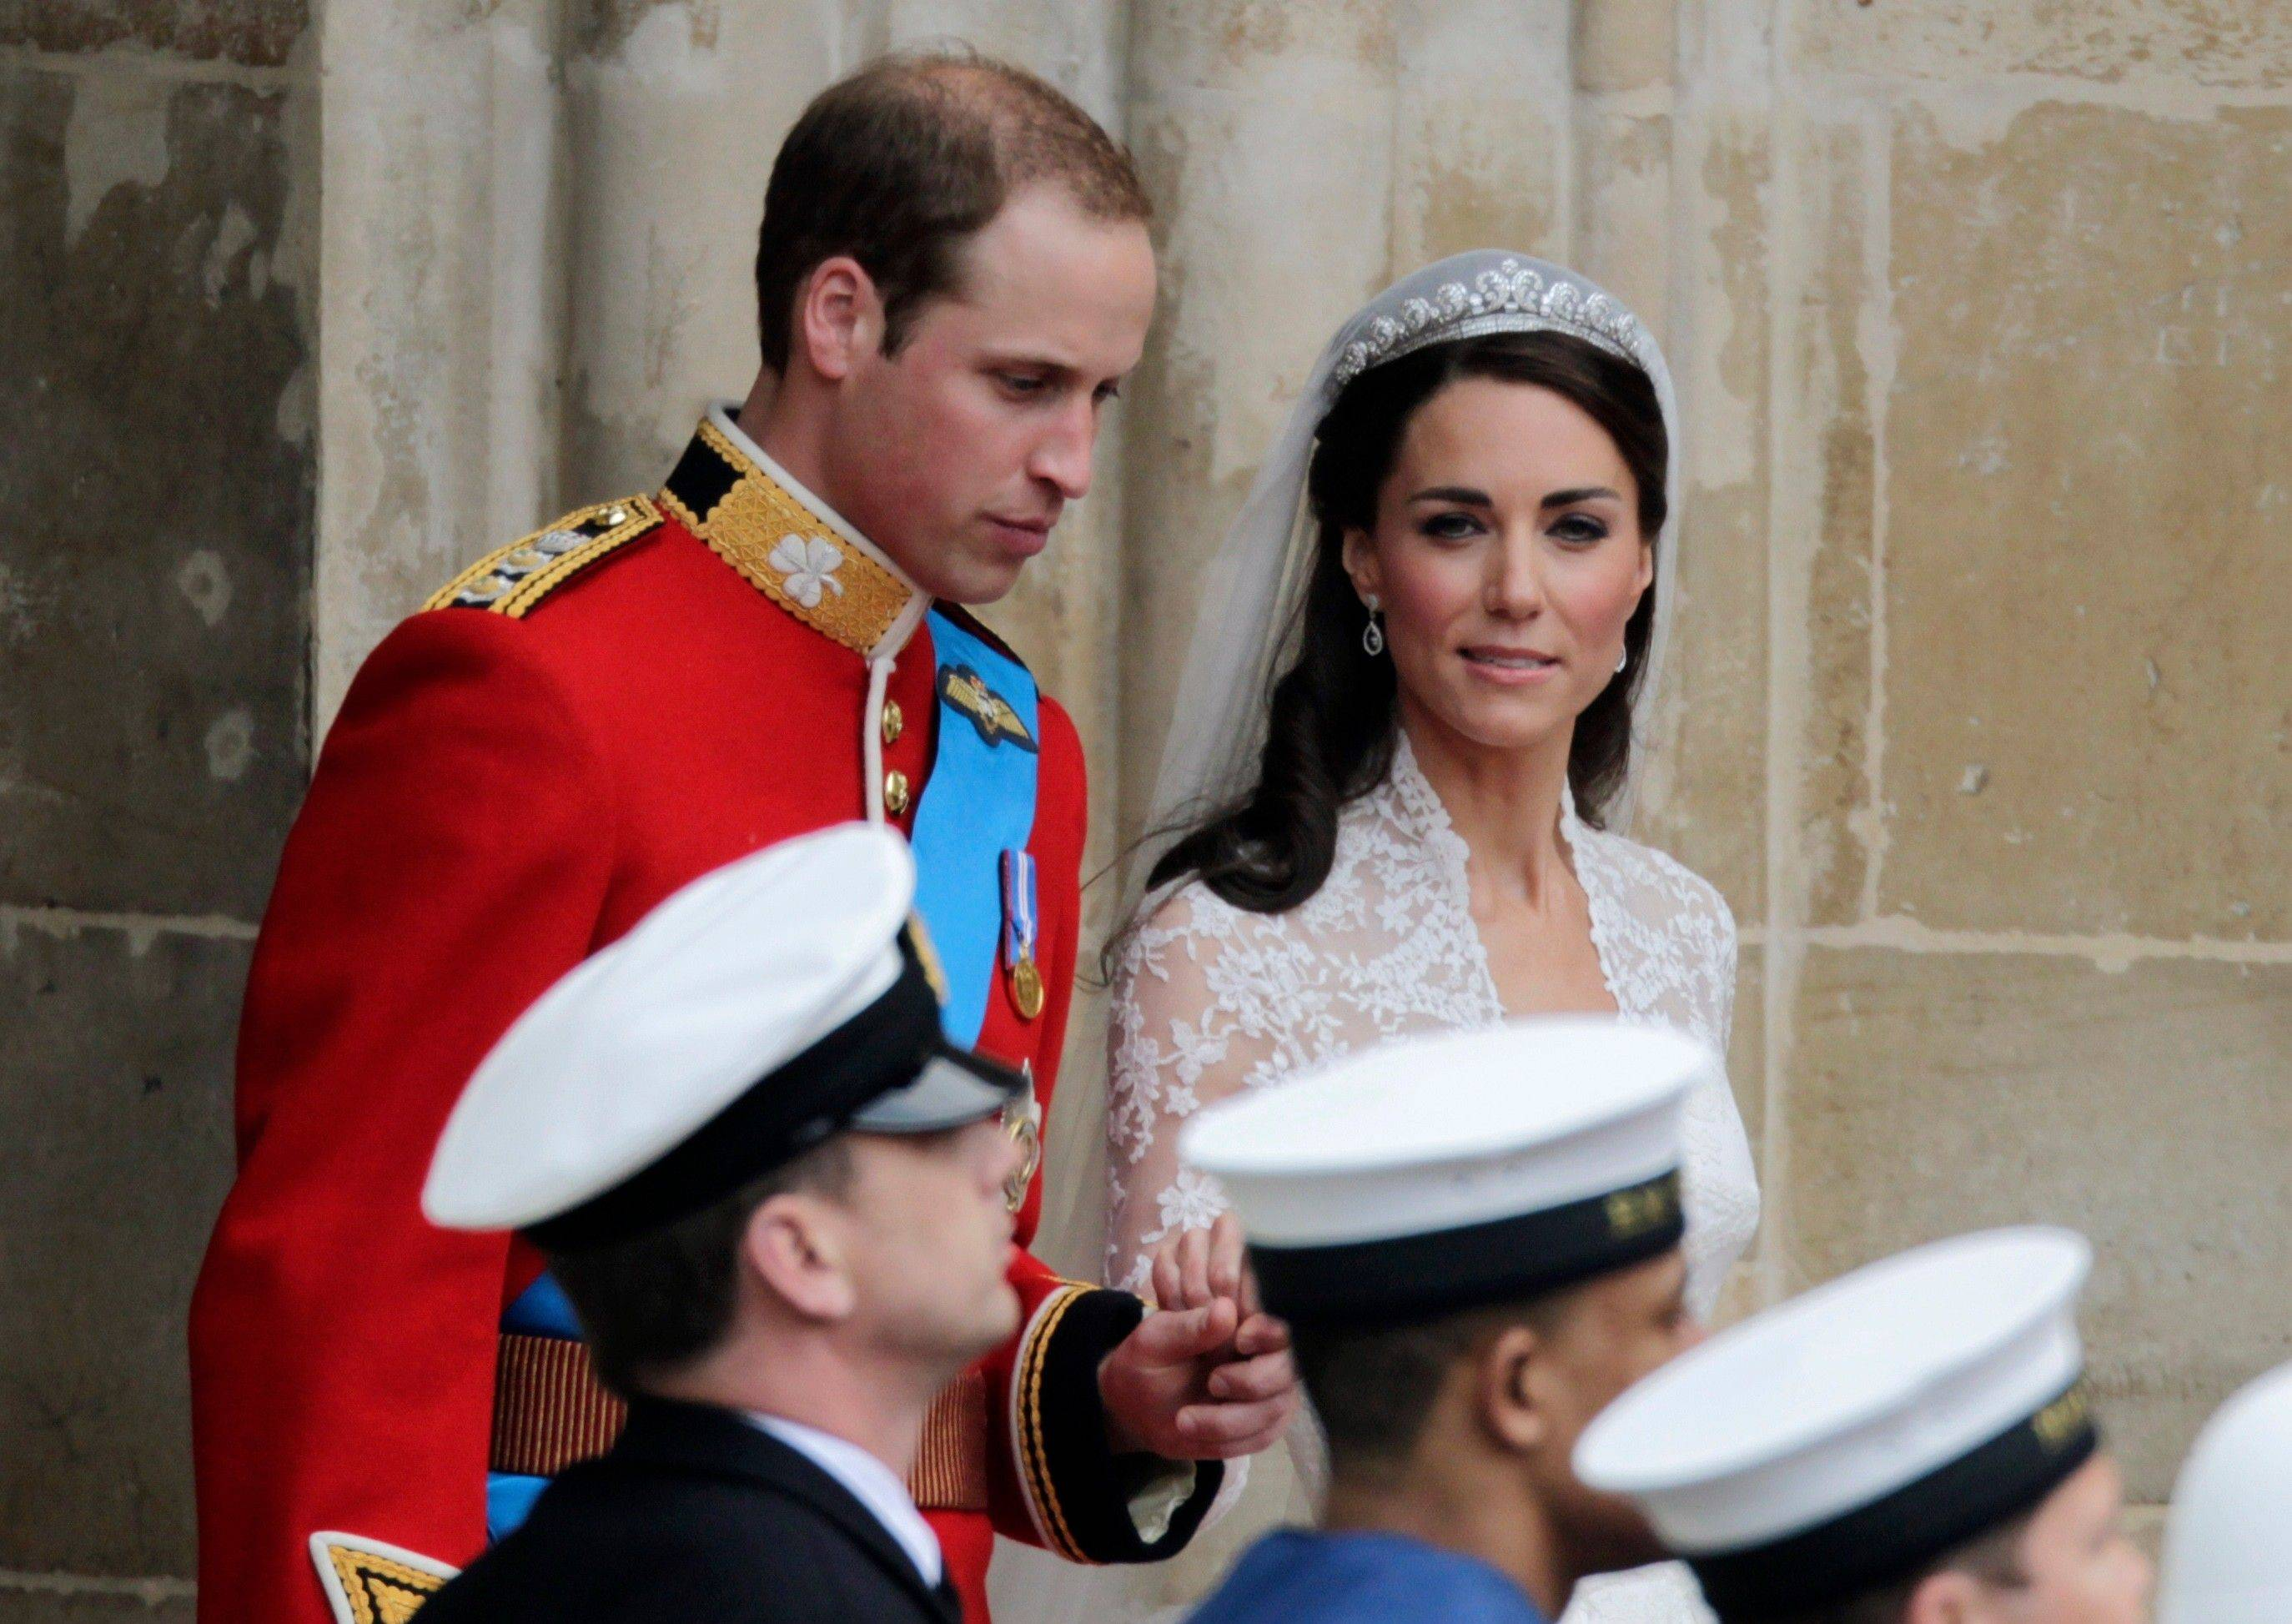 Britain's Prince William and his wife Kate, Duchess of Cambridge, leave Westminster Abbey at the Royal Wedding in London Friday, April 29, 2011.